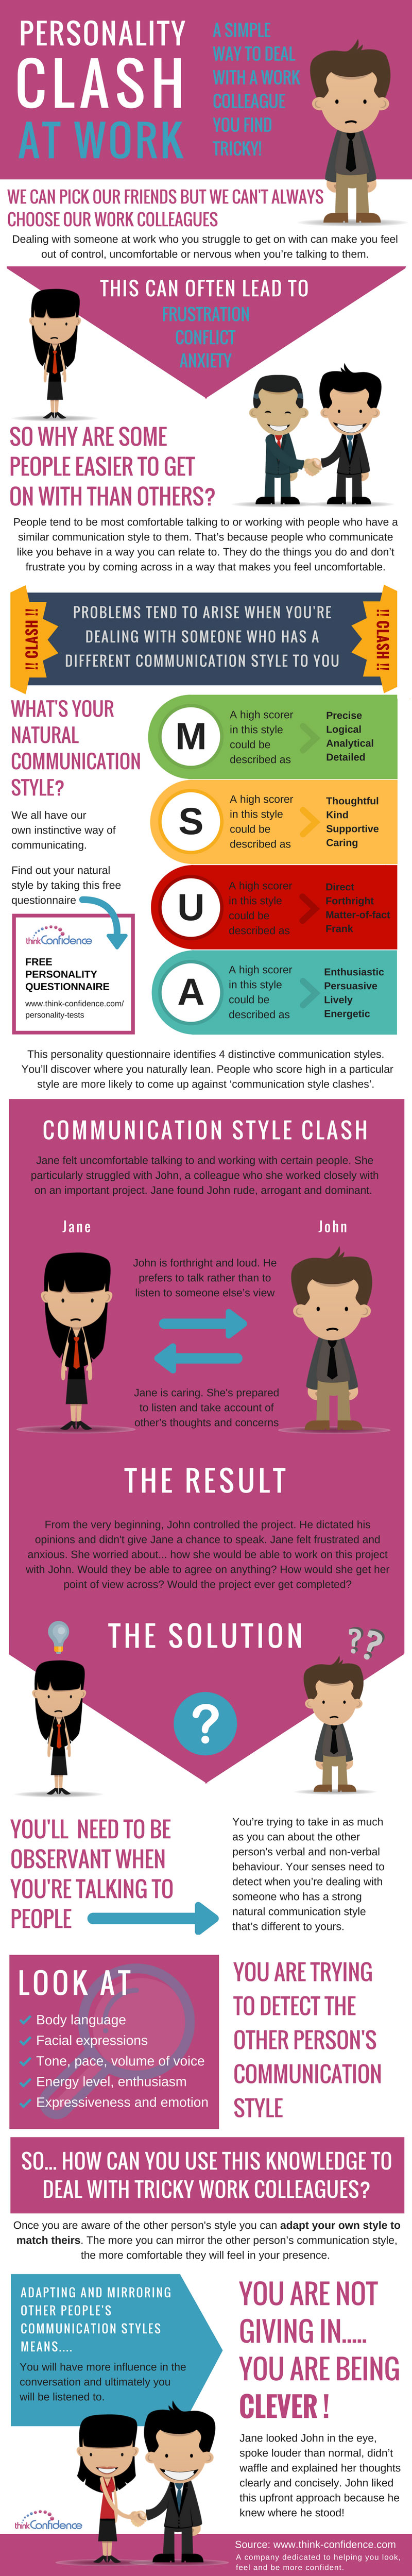 Personality Clash? A Simple Way To Deal With A Tricky Colleague